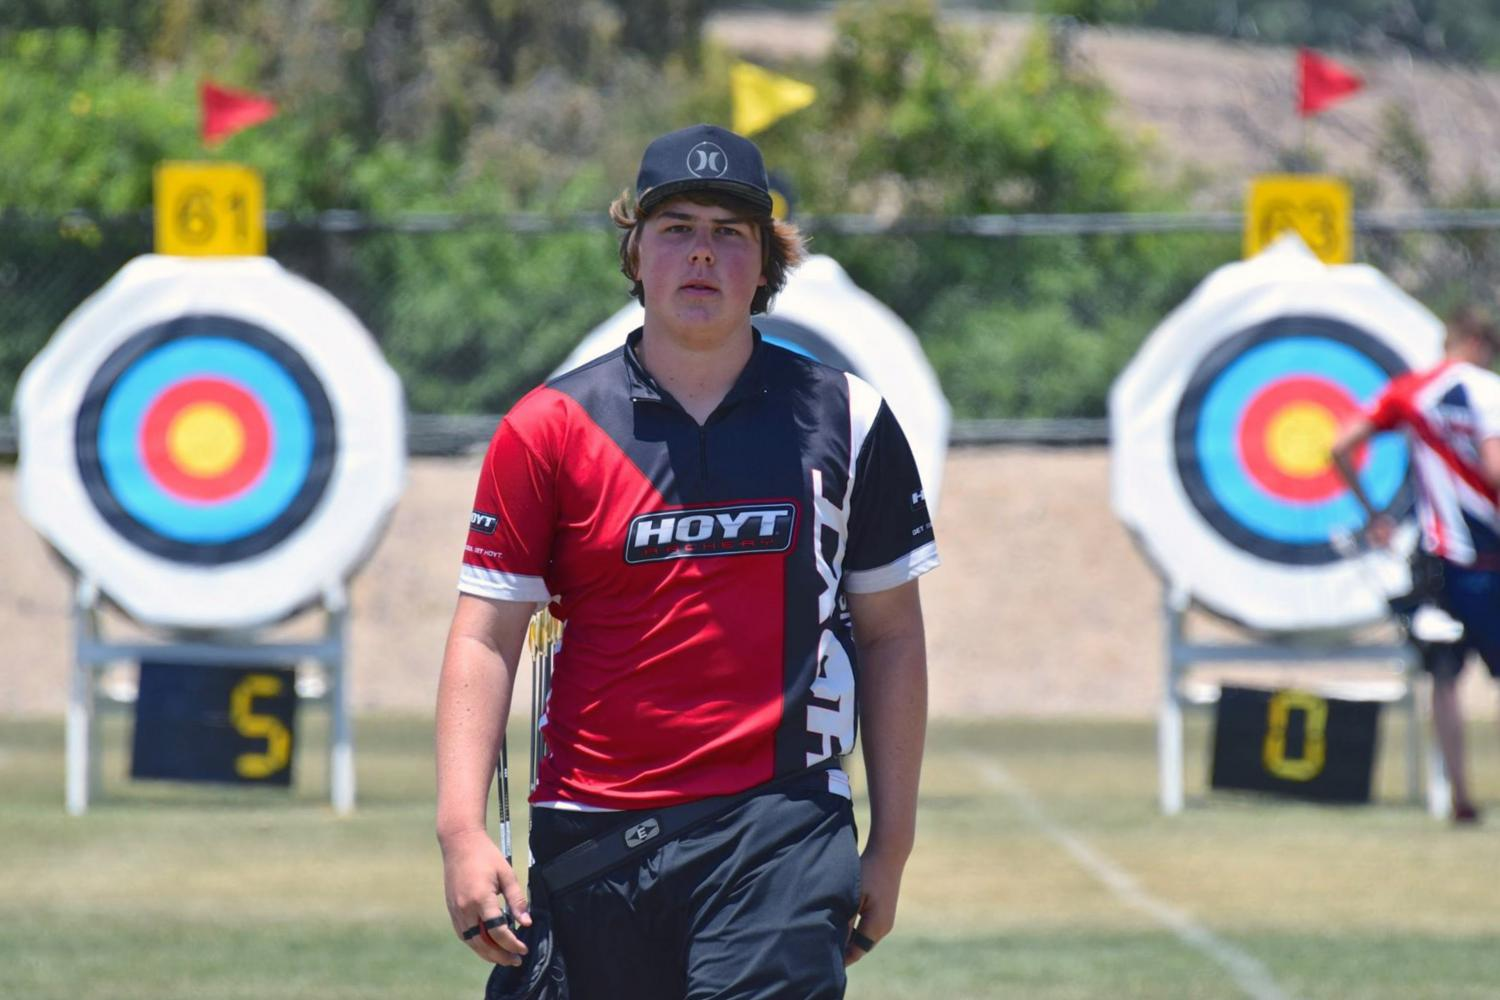 Olympic+hopeful+Jack+Williams+steadies+his+hands+for+a+precise+shot+at+the+archery+range%2C+hoping+to+advance+his+archery+career.+